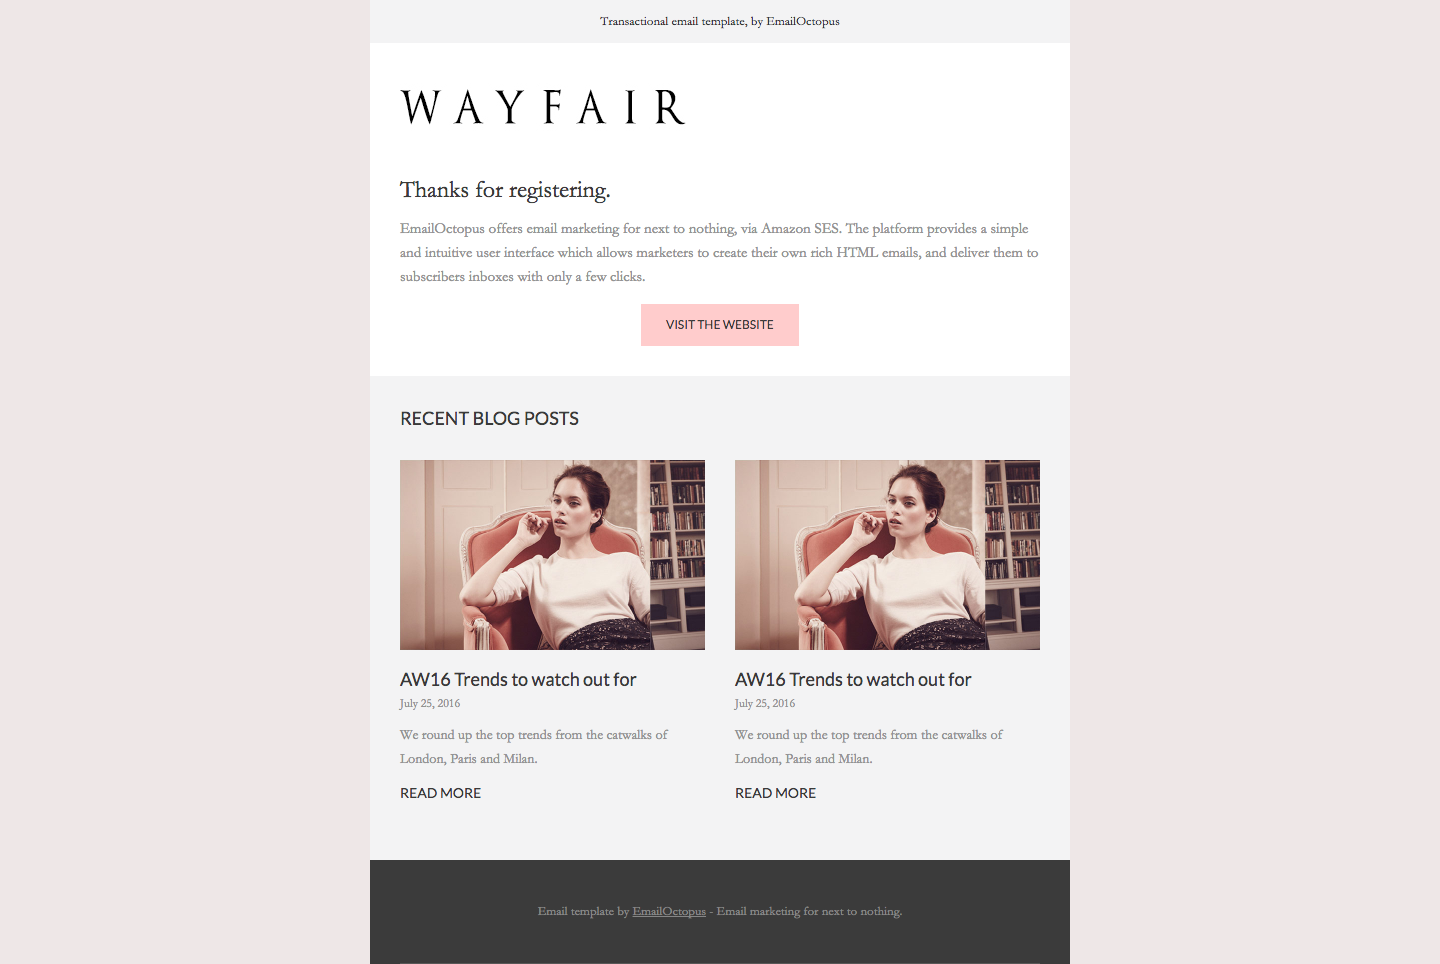 screencapture-file-Users-Tom-Documents-EO-Wayfair-20by-20EmailOctopus-textemail-html-1466690039186